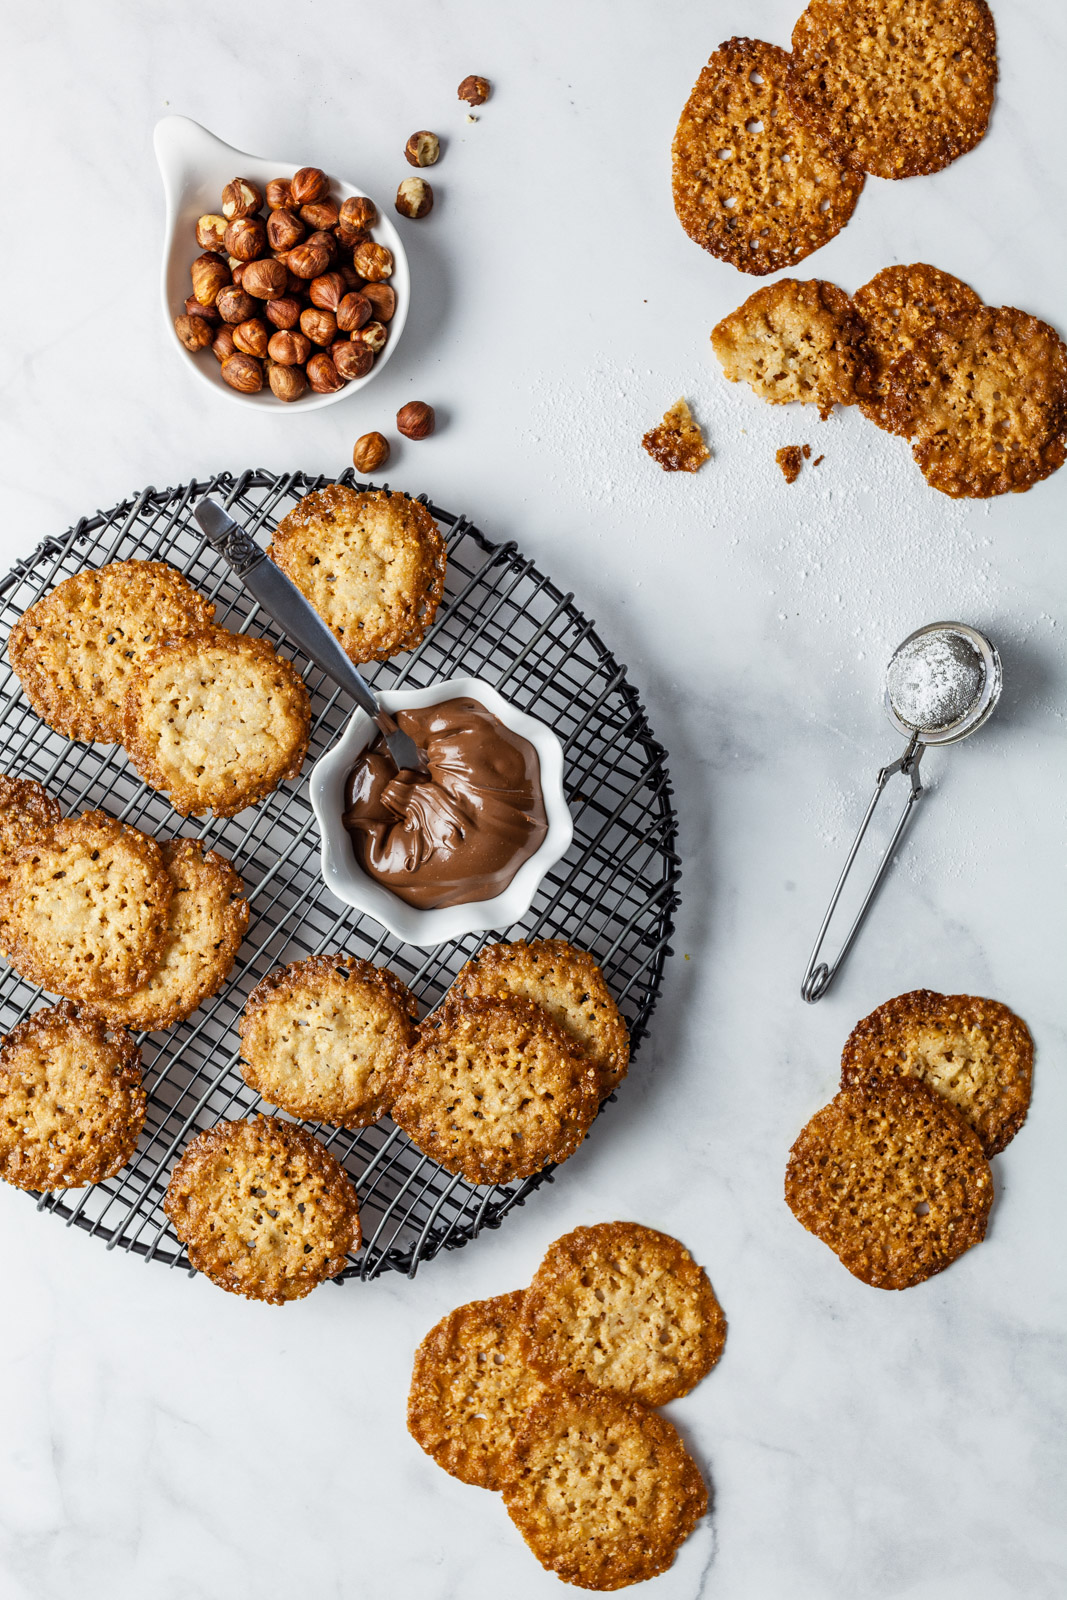 Chocolate Hazelnut Florentine Cookies (Lace Cookies)